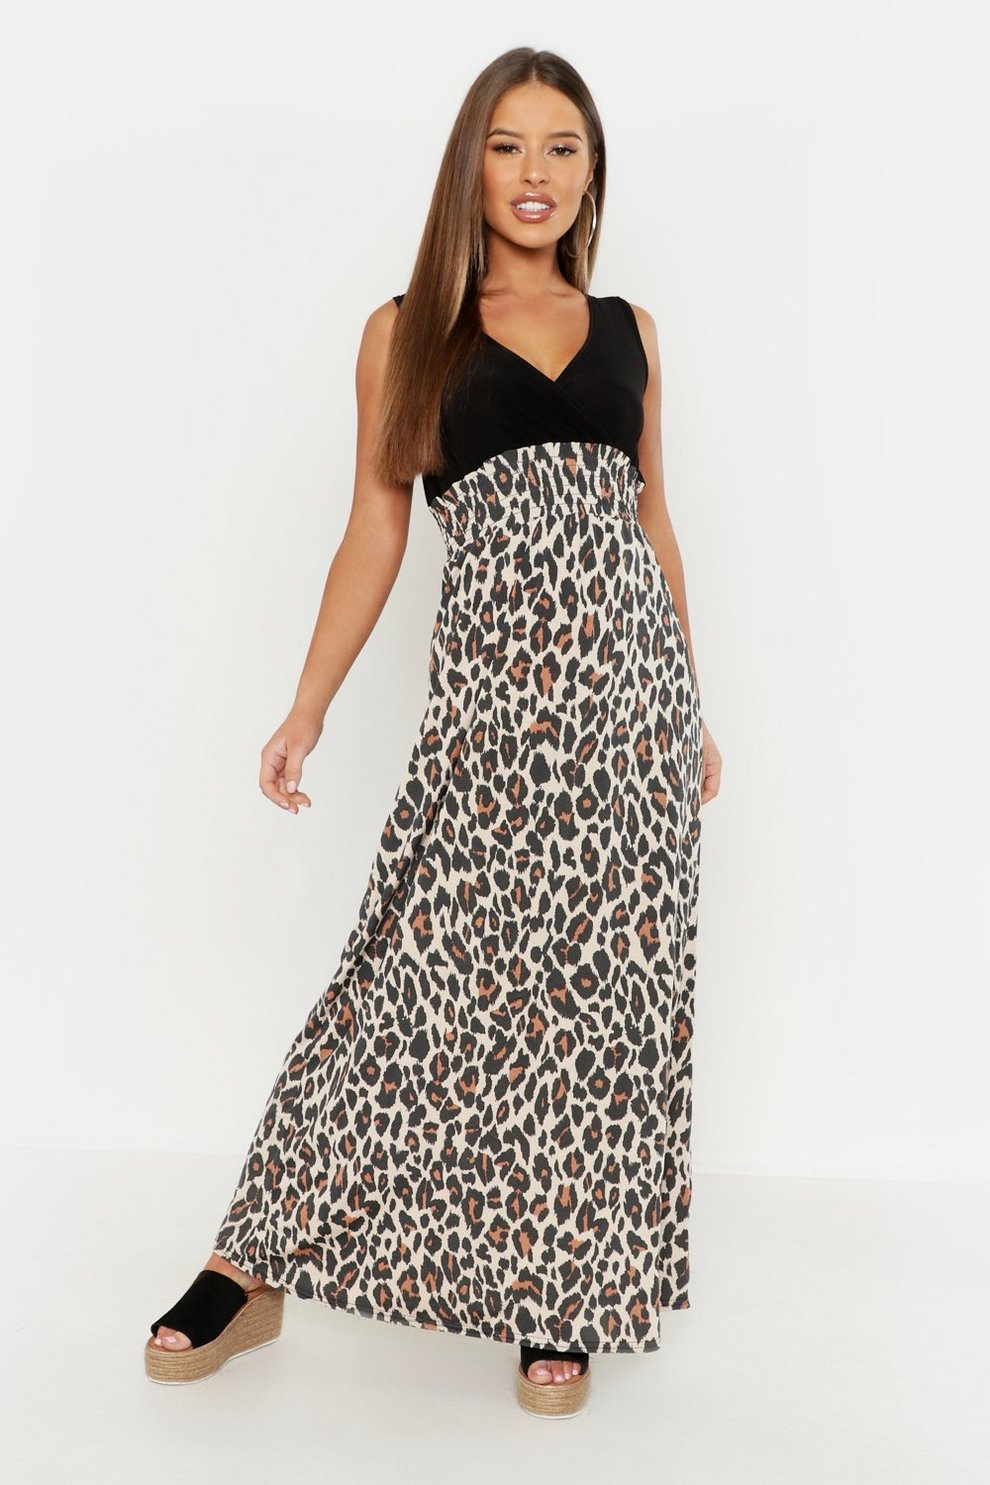 6242a21105 Womens Black Petite Leopard Print Maxi Dress. Hover to zoom